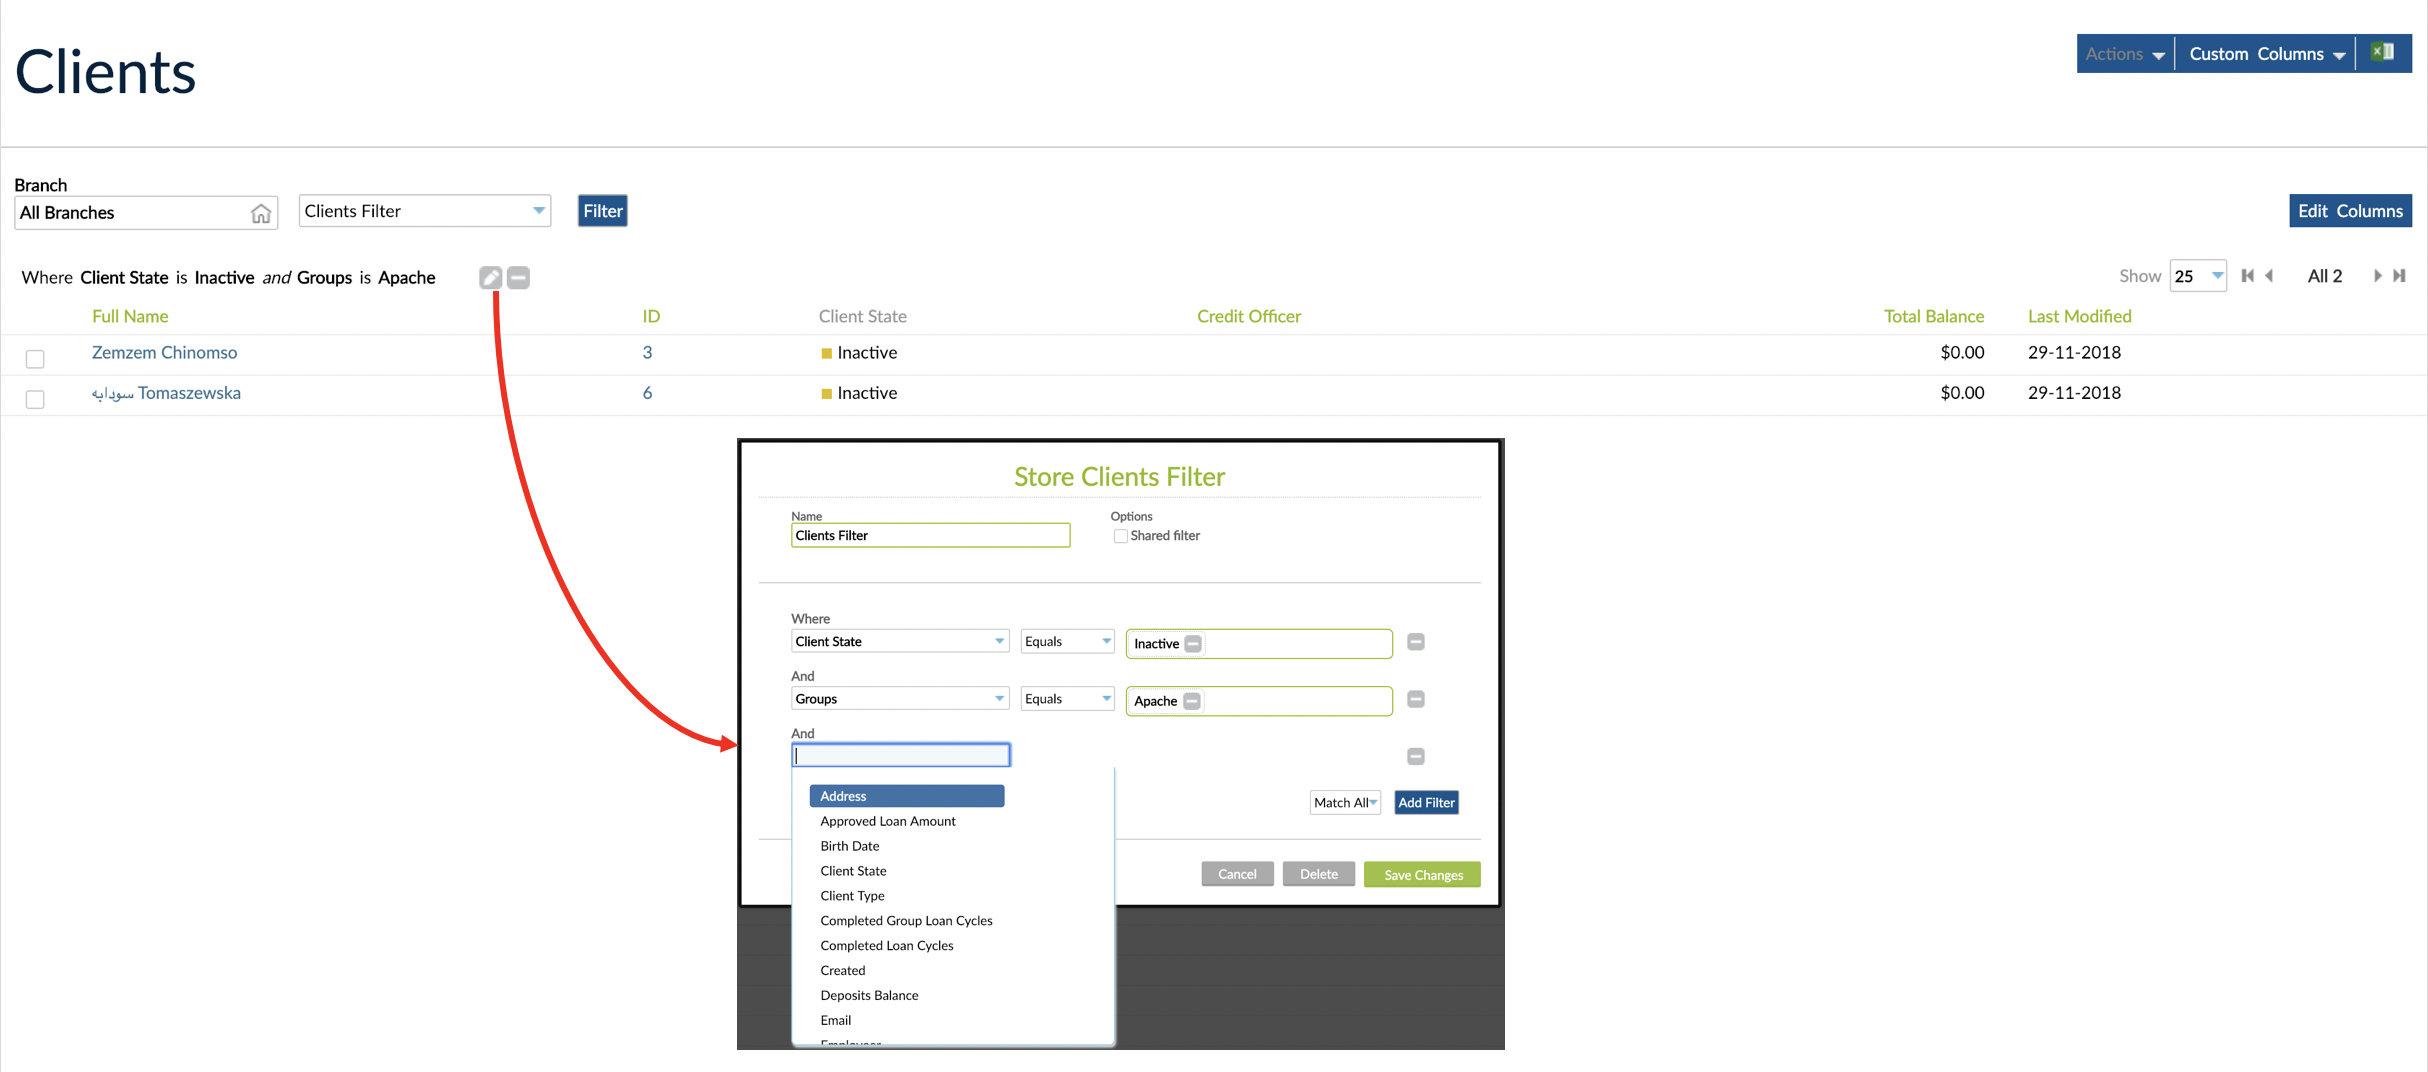 Custom Filter defined for Clients with Client State and Group